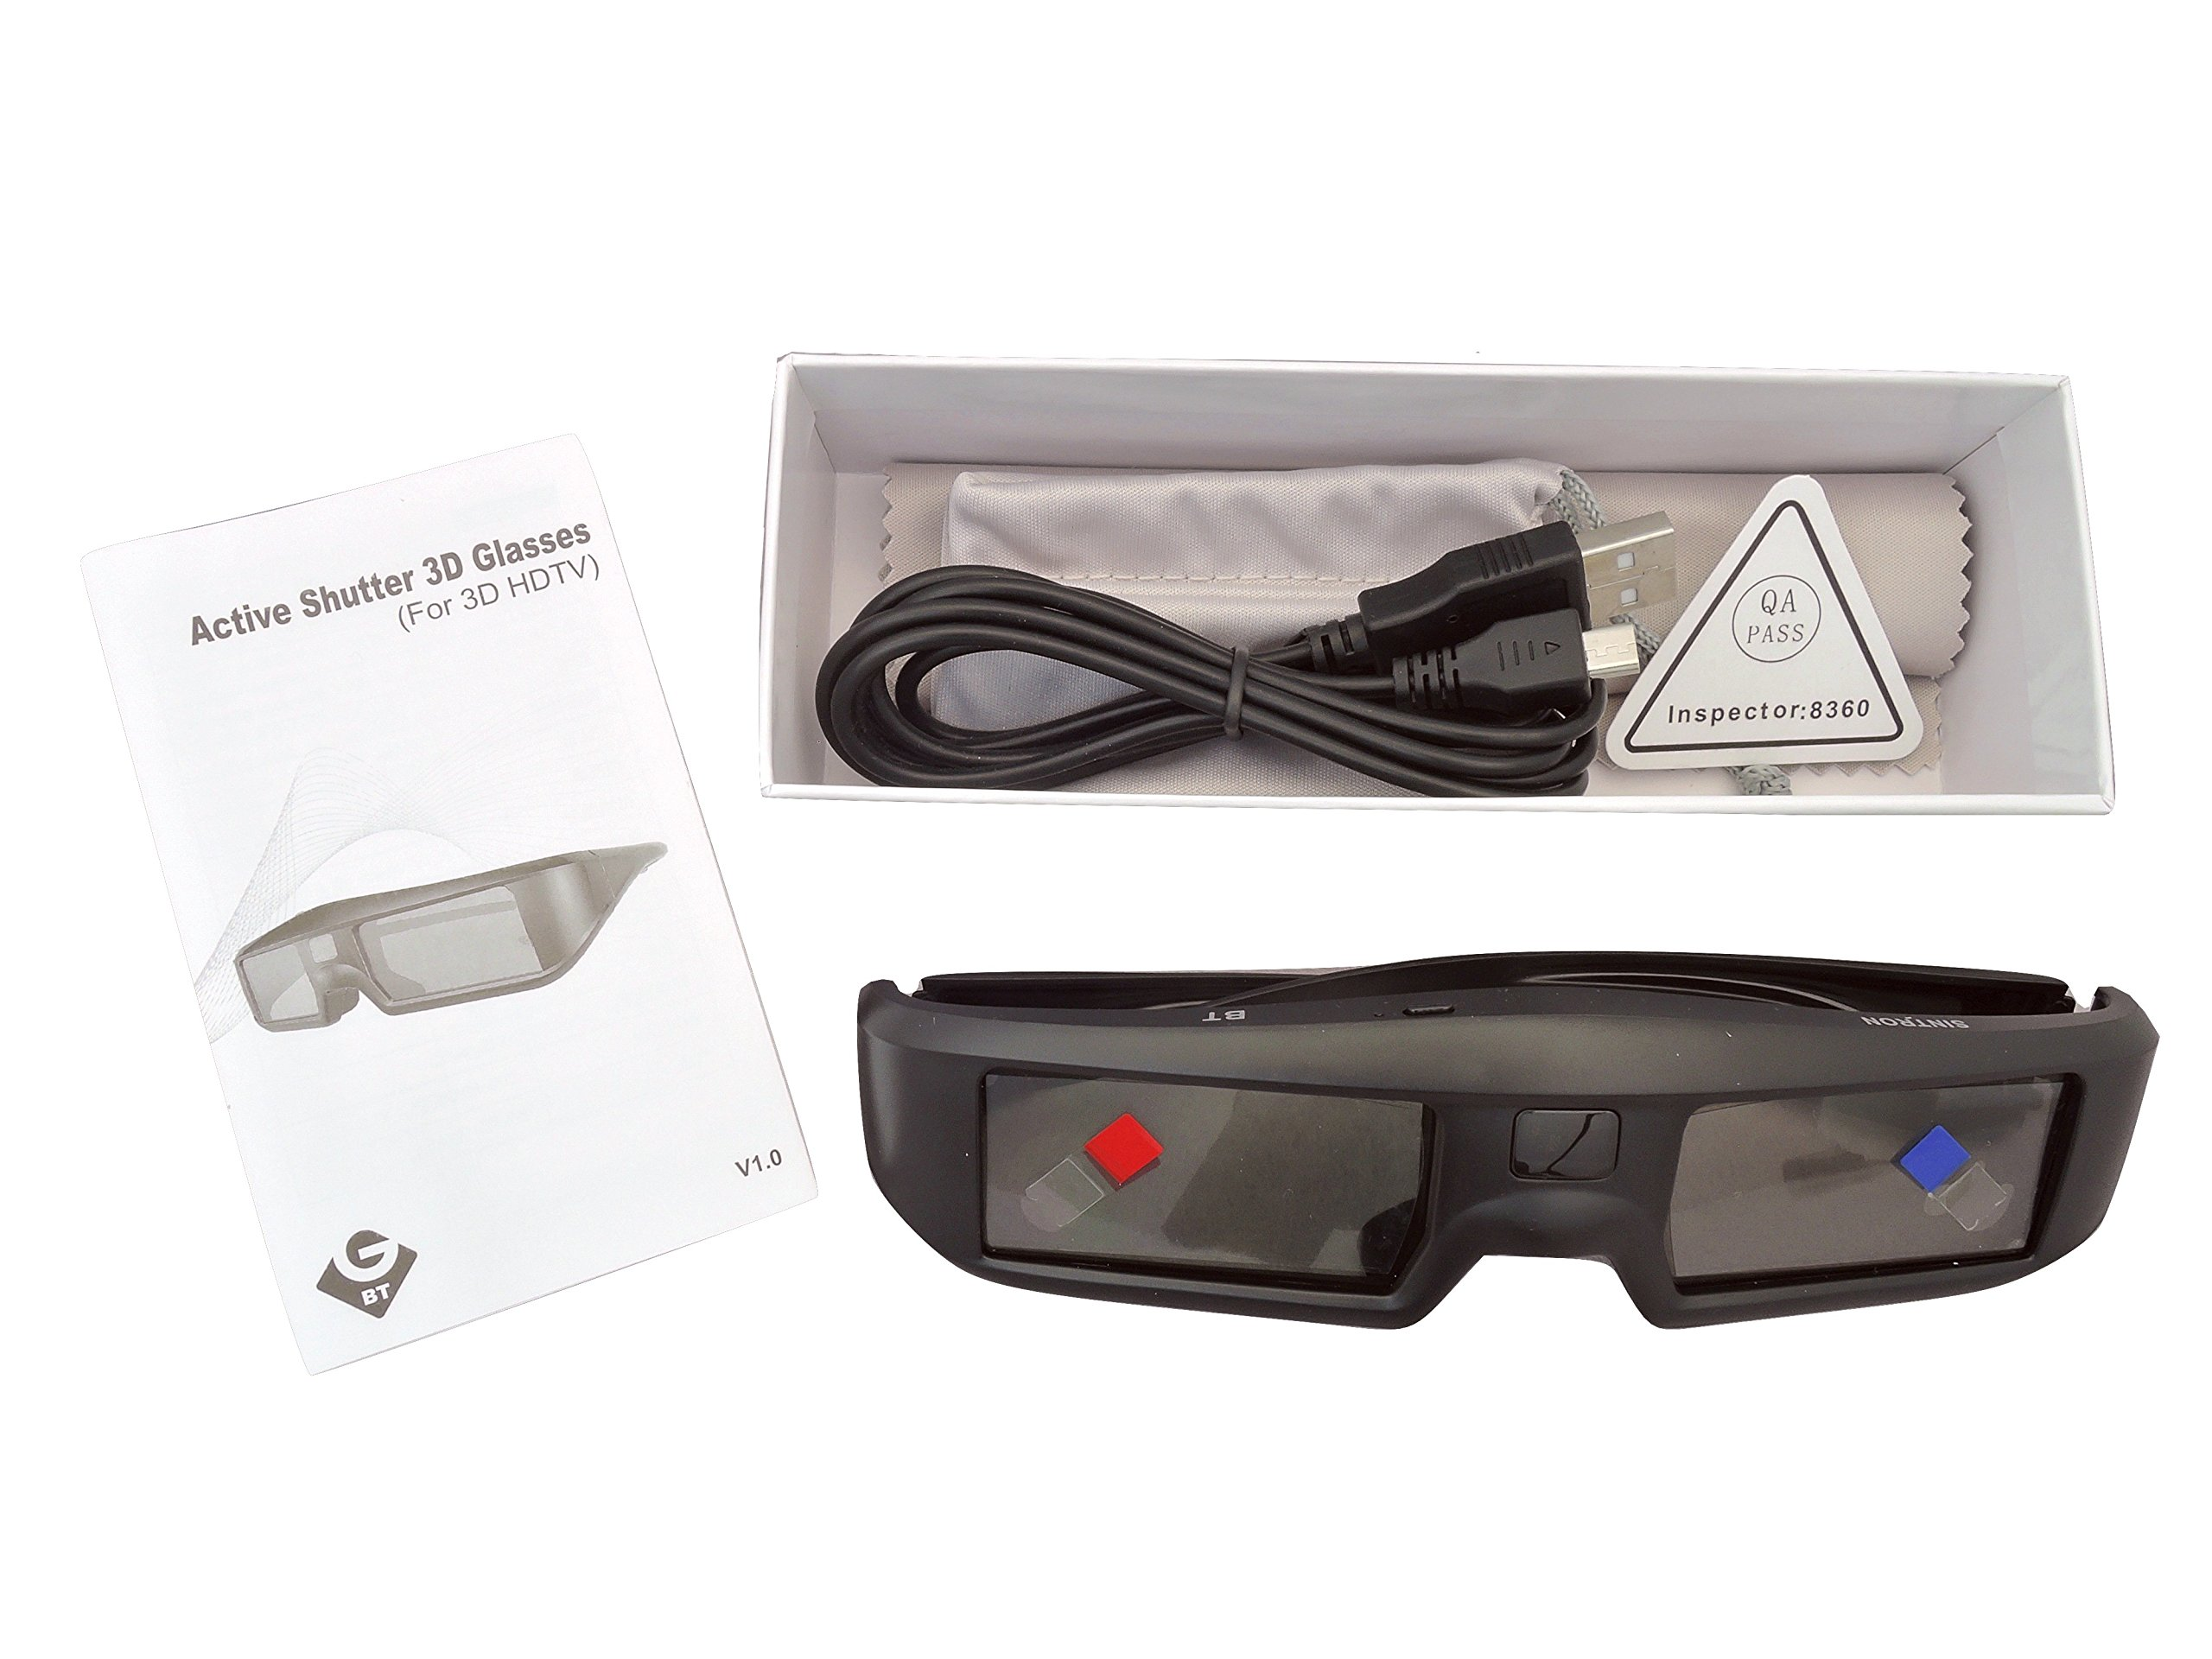 2X 3D Active Shutter Glasses Rechargeable - Sintron ST07-BT for RF 3D TV, 3D Glasses for Sony, Panasonic, Samsung 3D TV, Epson 3D projector, Compatible with TDG-BT500A TDG-BT400A TY-ER3D5MA TY-ER3D4MA by Sintron (Image #8)